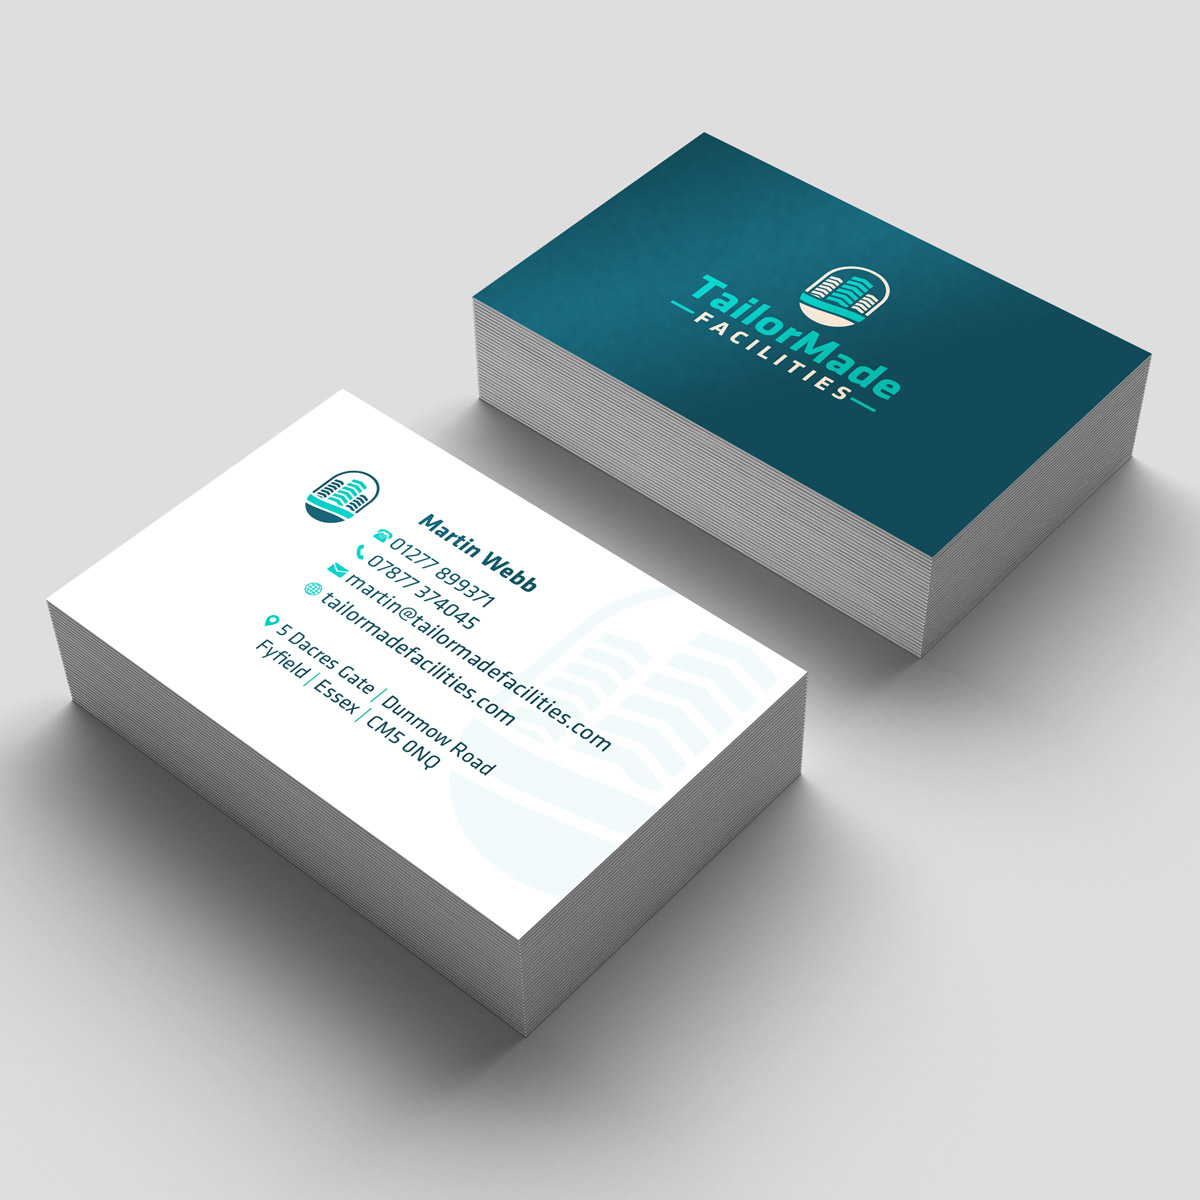 Promoworx - TailorMade Facilities Business Card